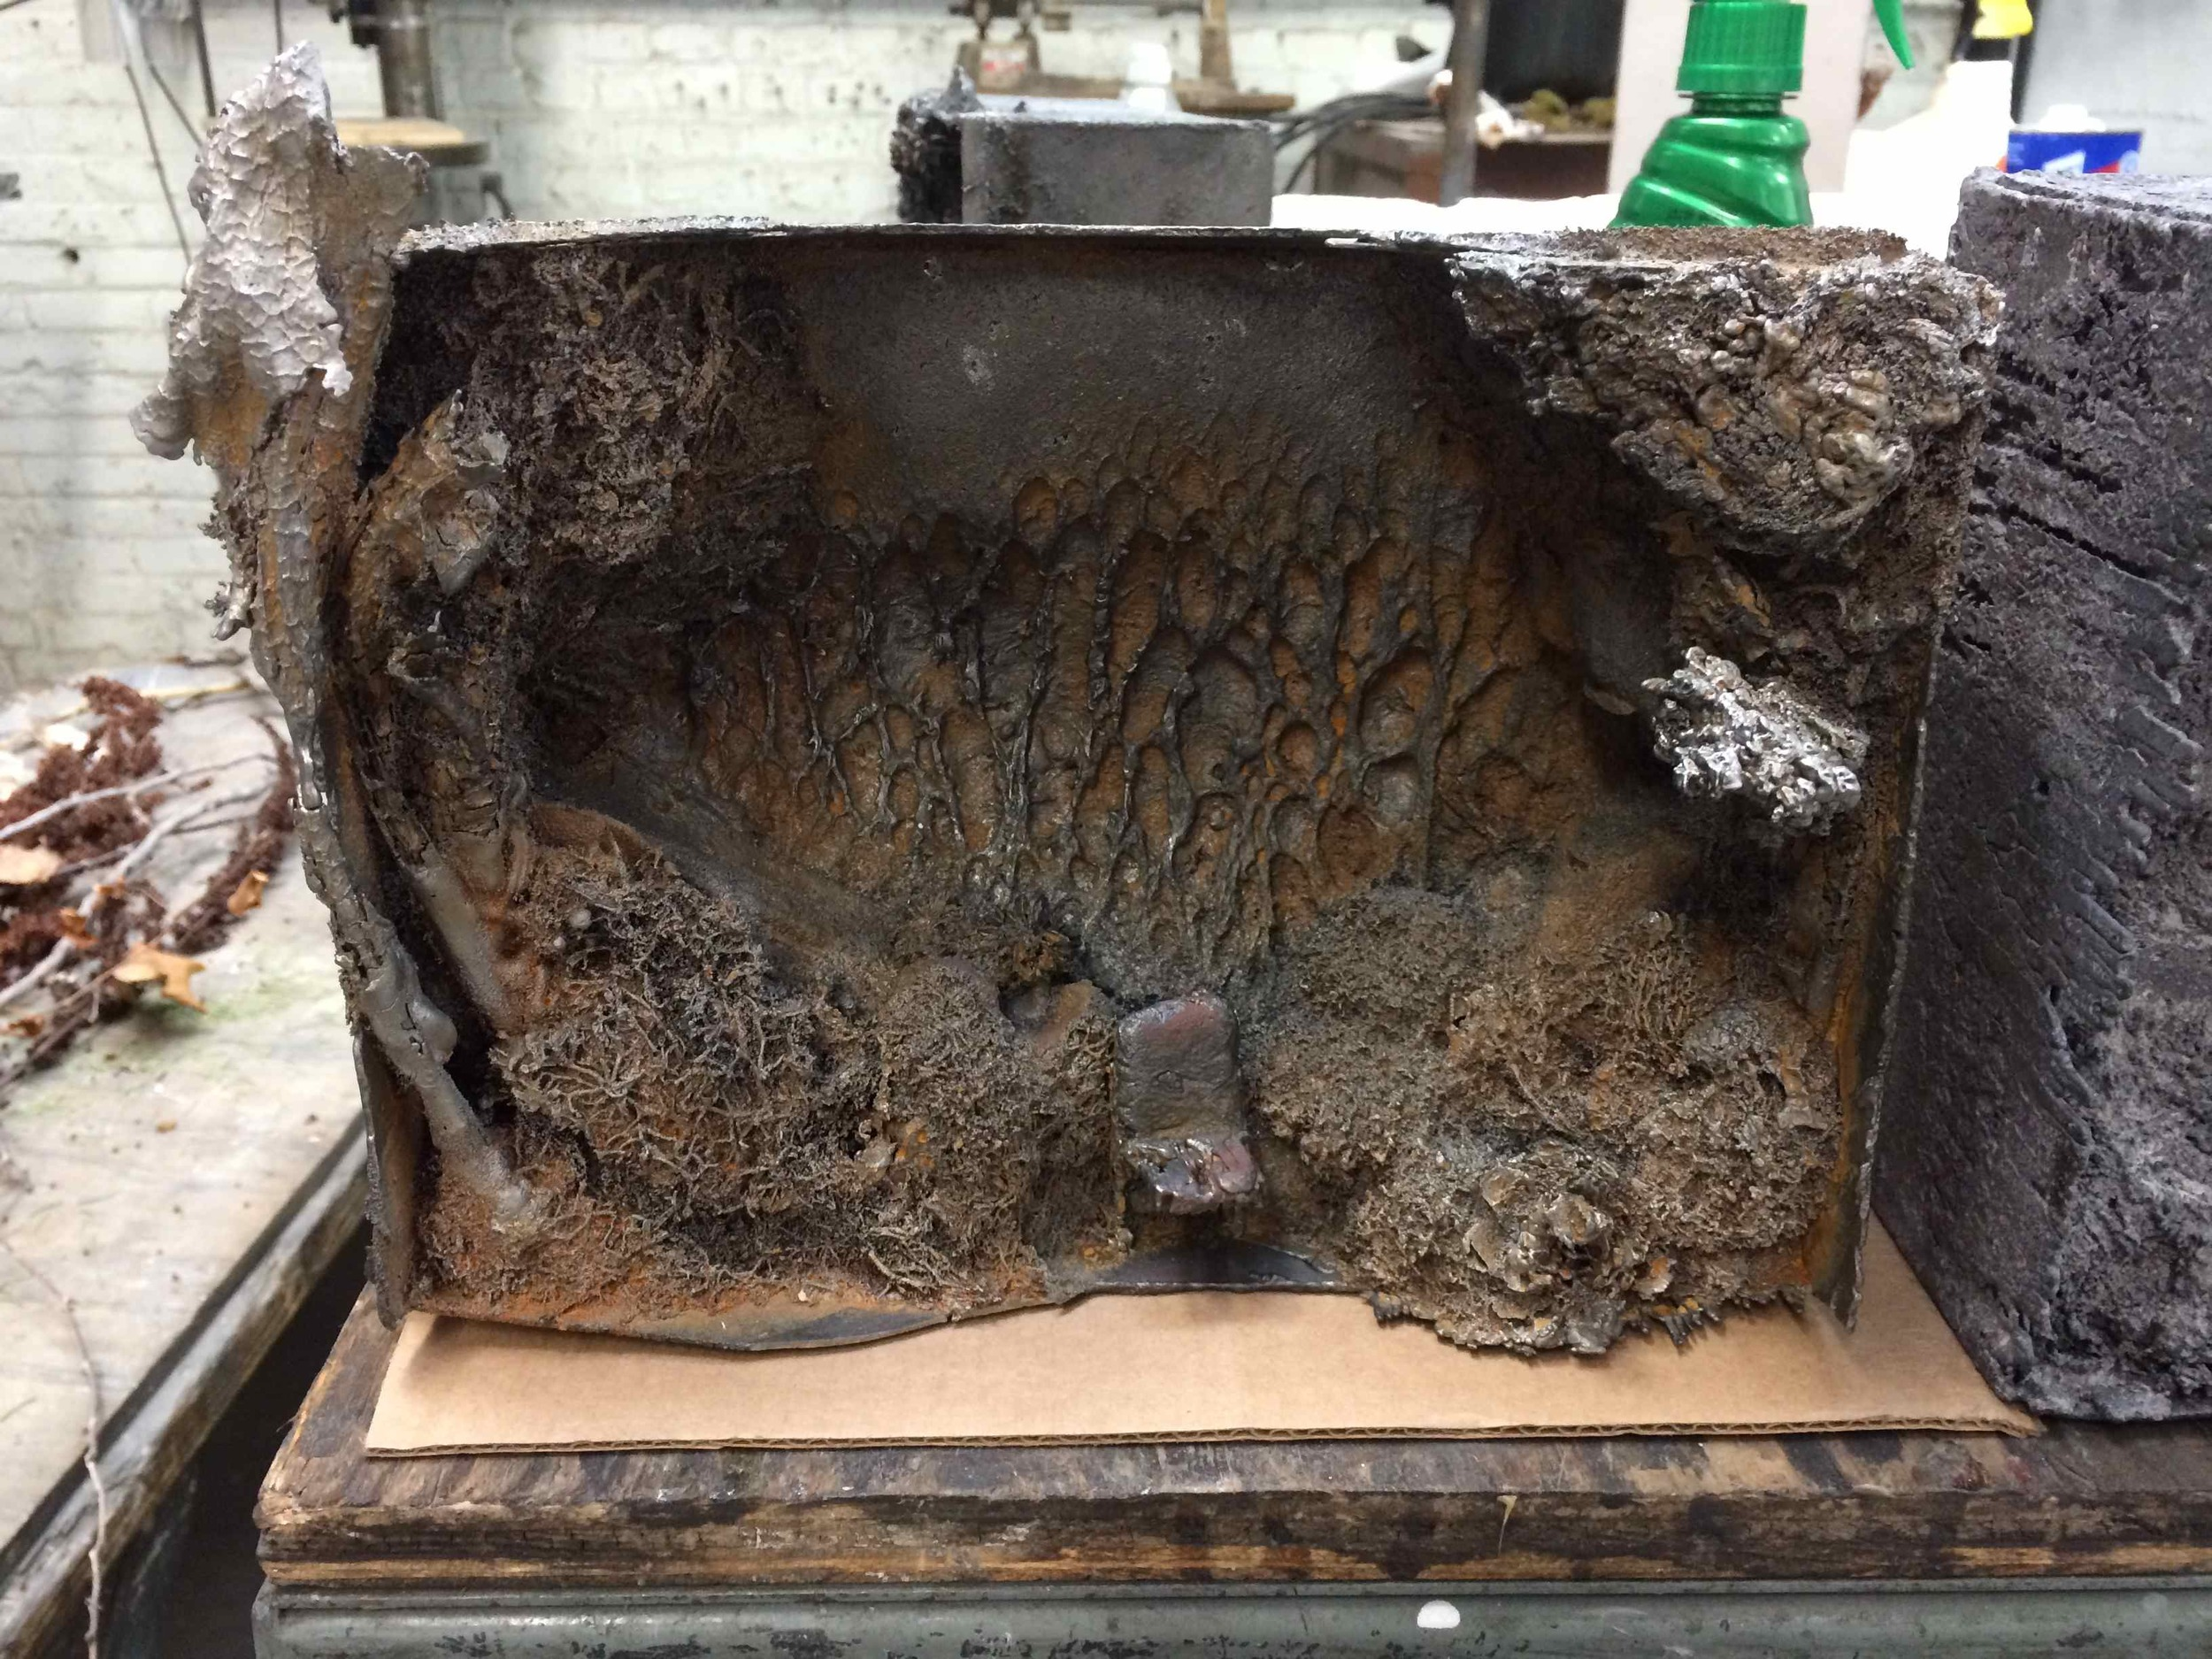 Paleo Landscape, cast iron with rust patina in the amazing Arts/Industry Residency at Kohler Co.'s Foundry